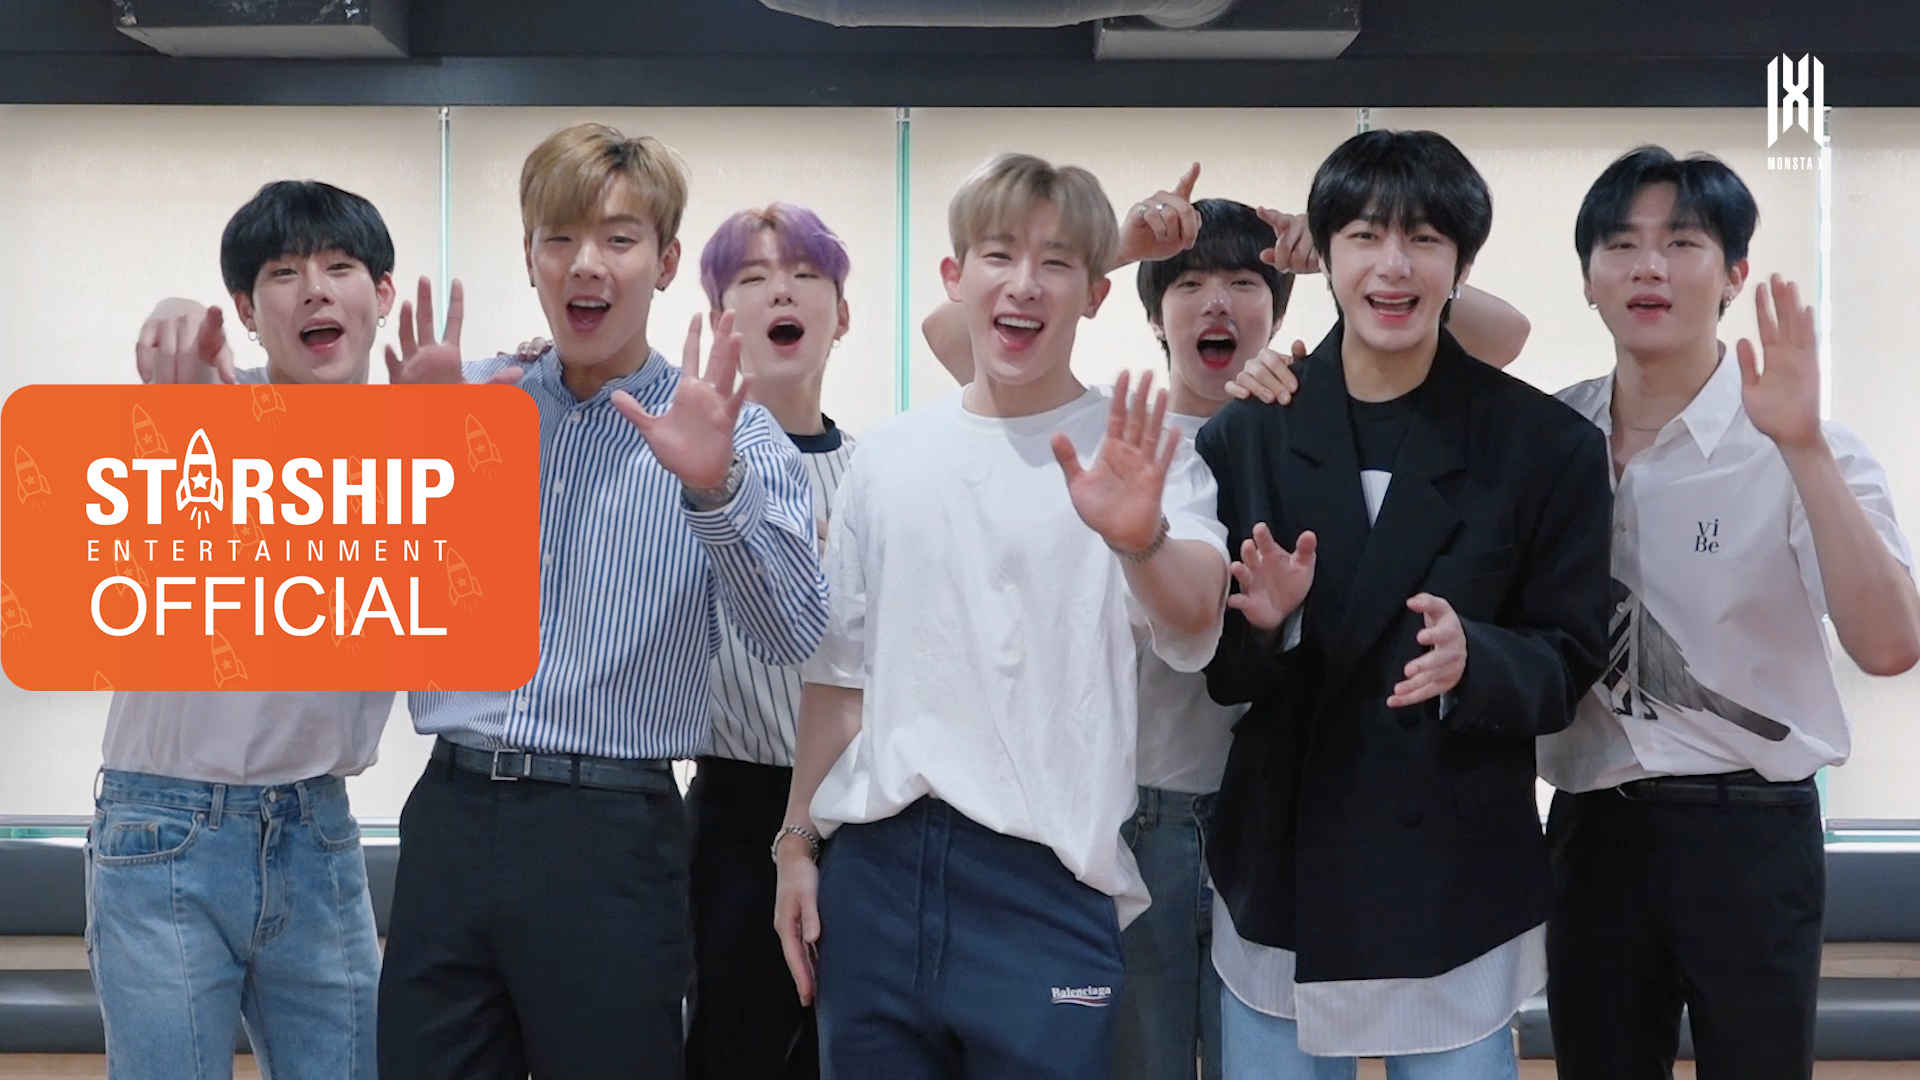 [Special Clip] 몬스타엑스 (MONSTA X) - DEBUT 4th Anniversary Message